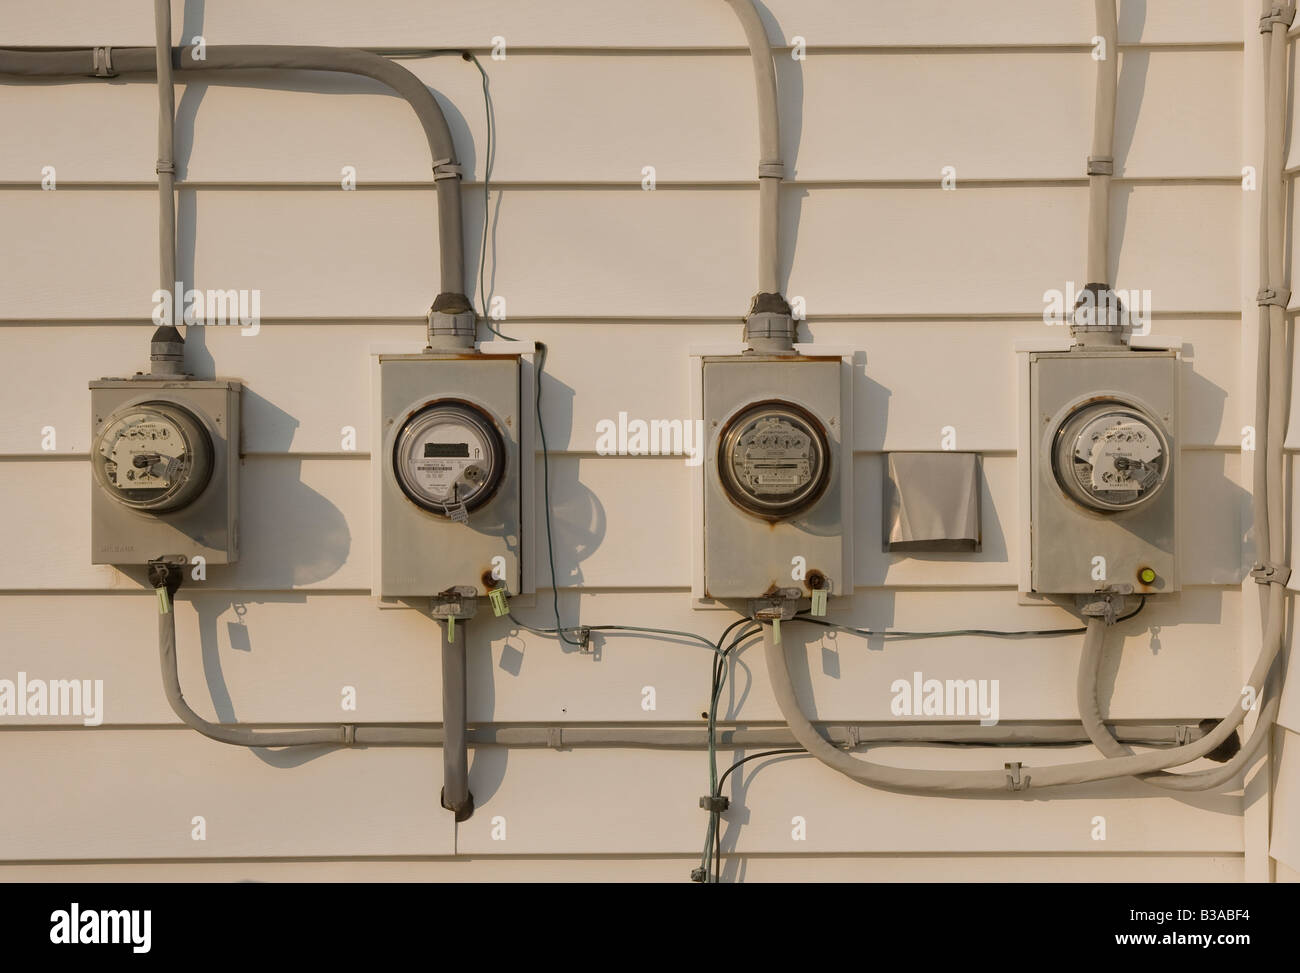 Electrical meters attached to a building - Stock Image